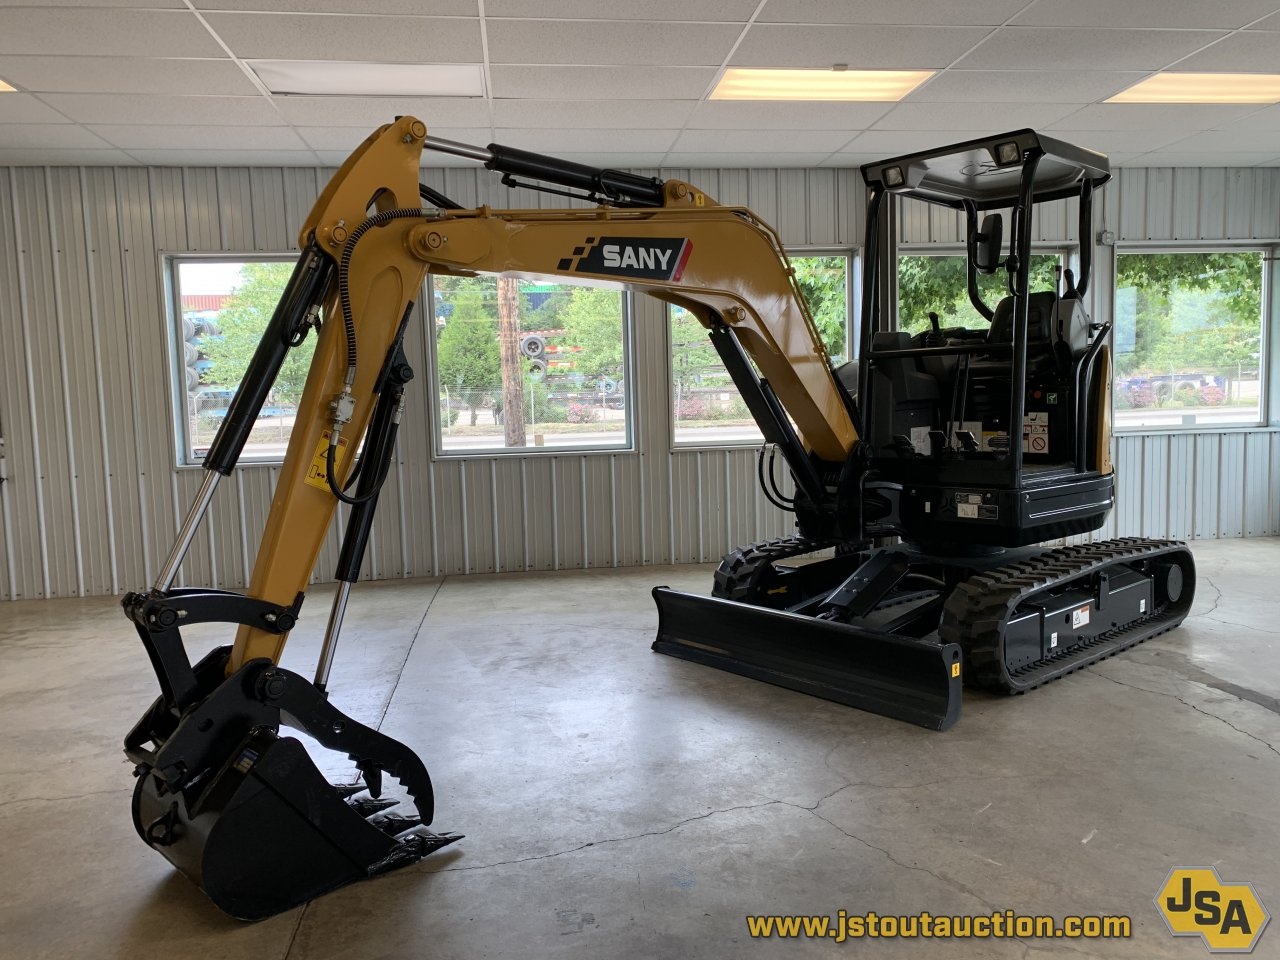 For Sale: 2018 Sany SY35U Excavators Mini (up to 12,000 lbs)